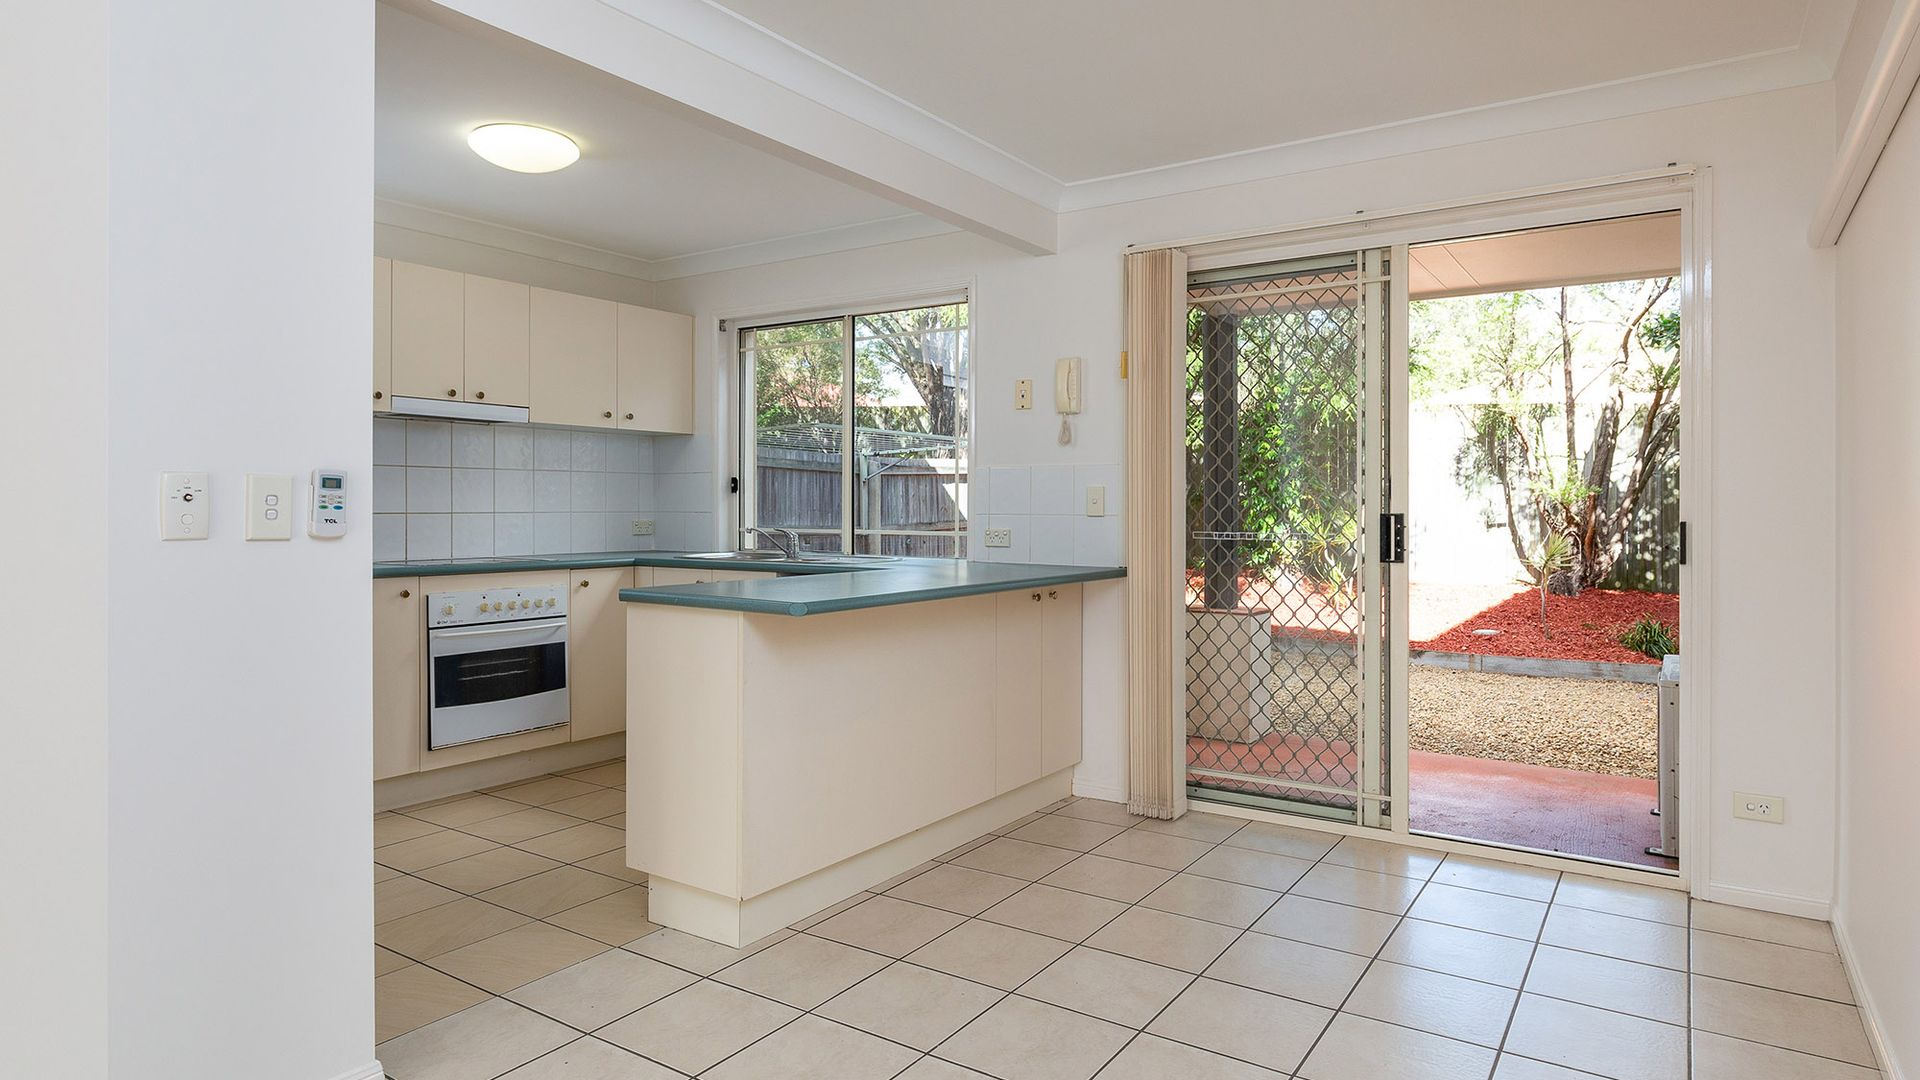 8/8 Gemview Street, Calamvale QLD 4116, Image 2